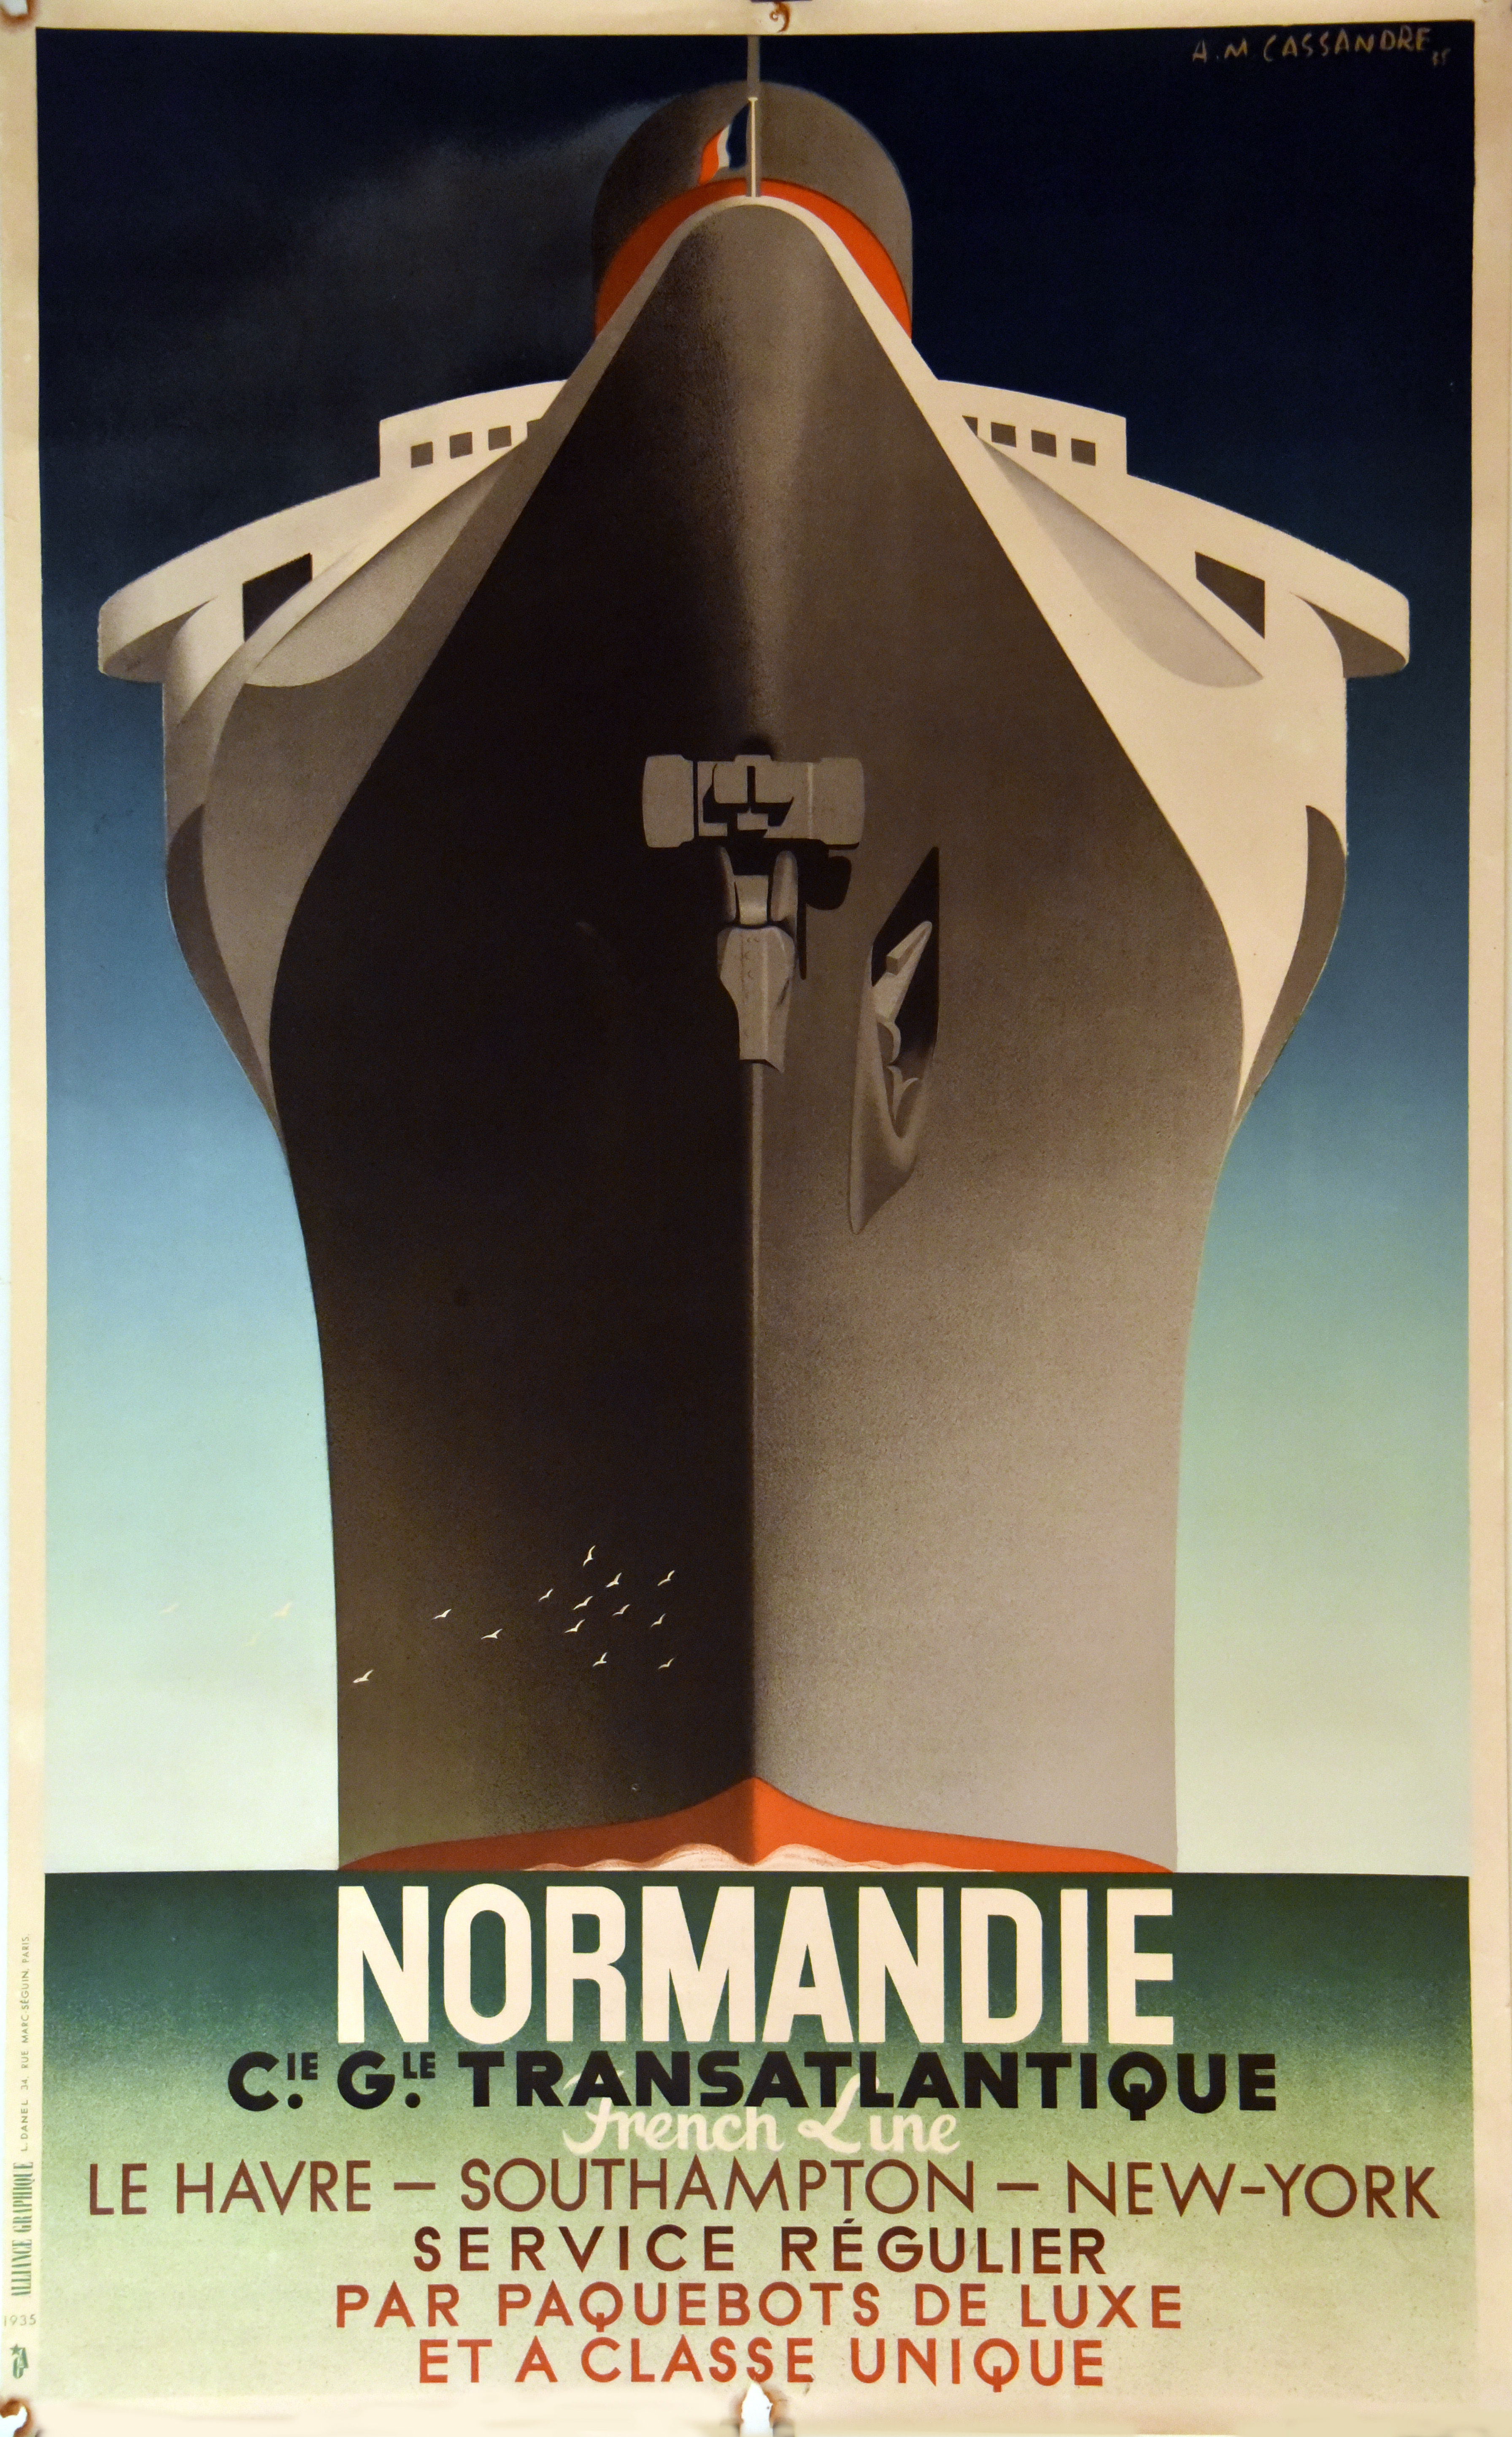 Adolphe Cassandre's famed 1935 depiction of SS Normandie.